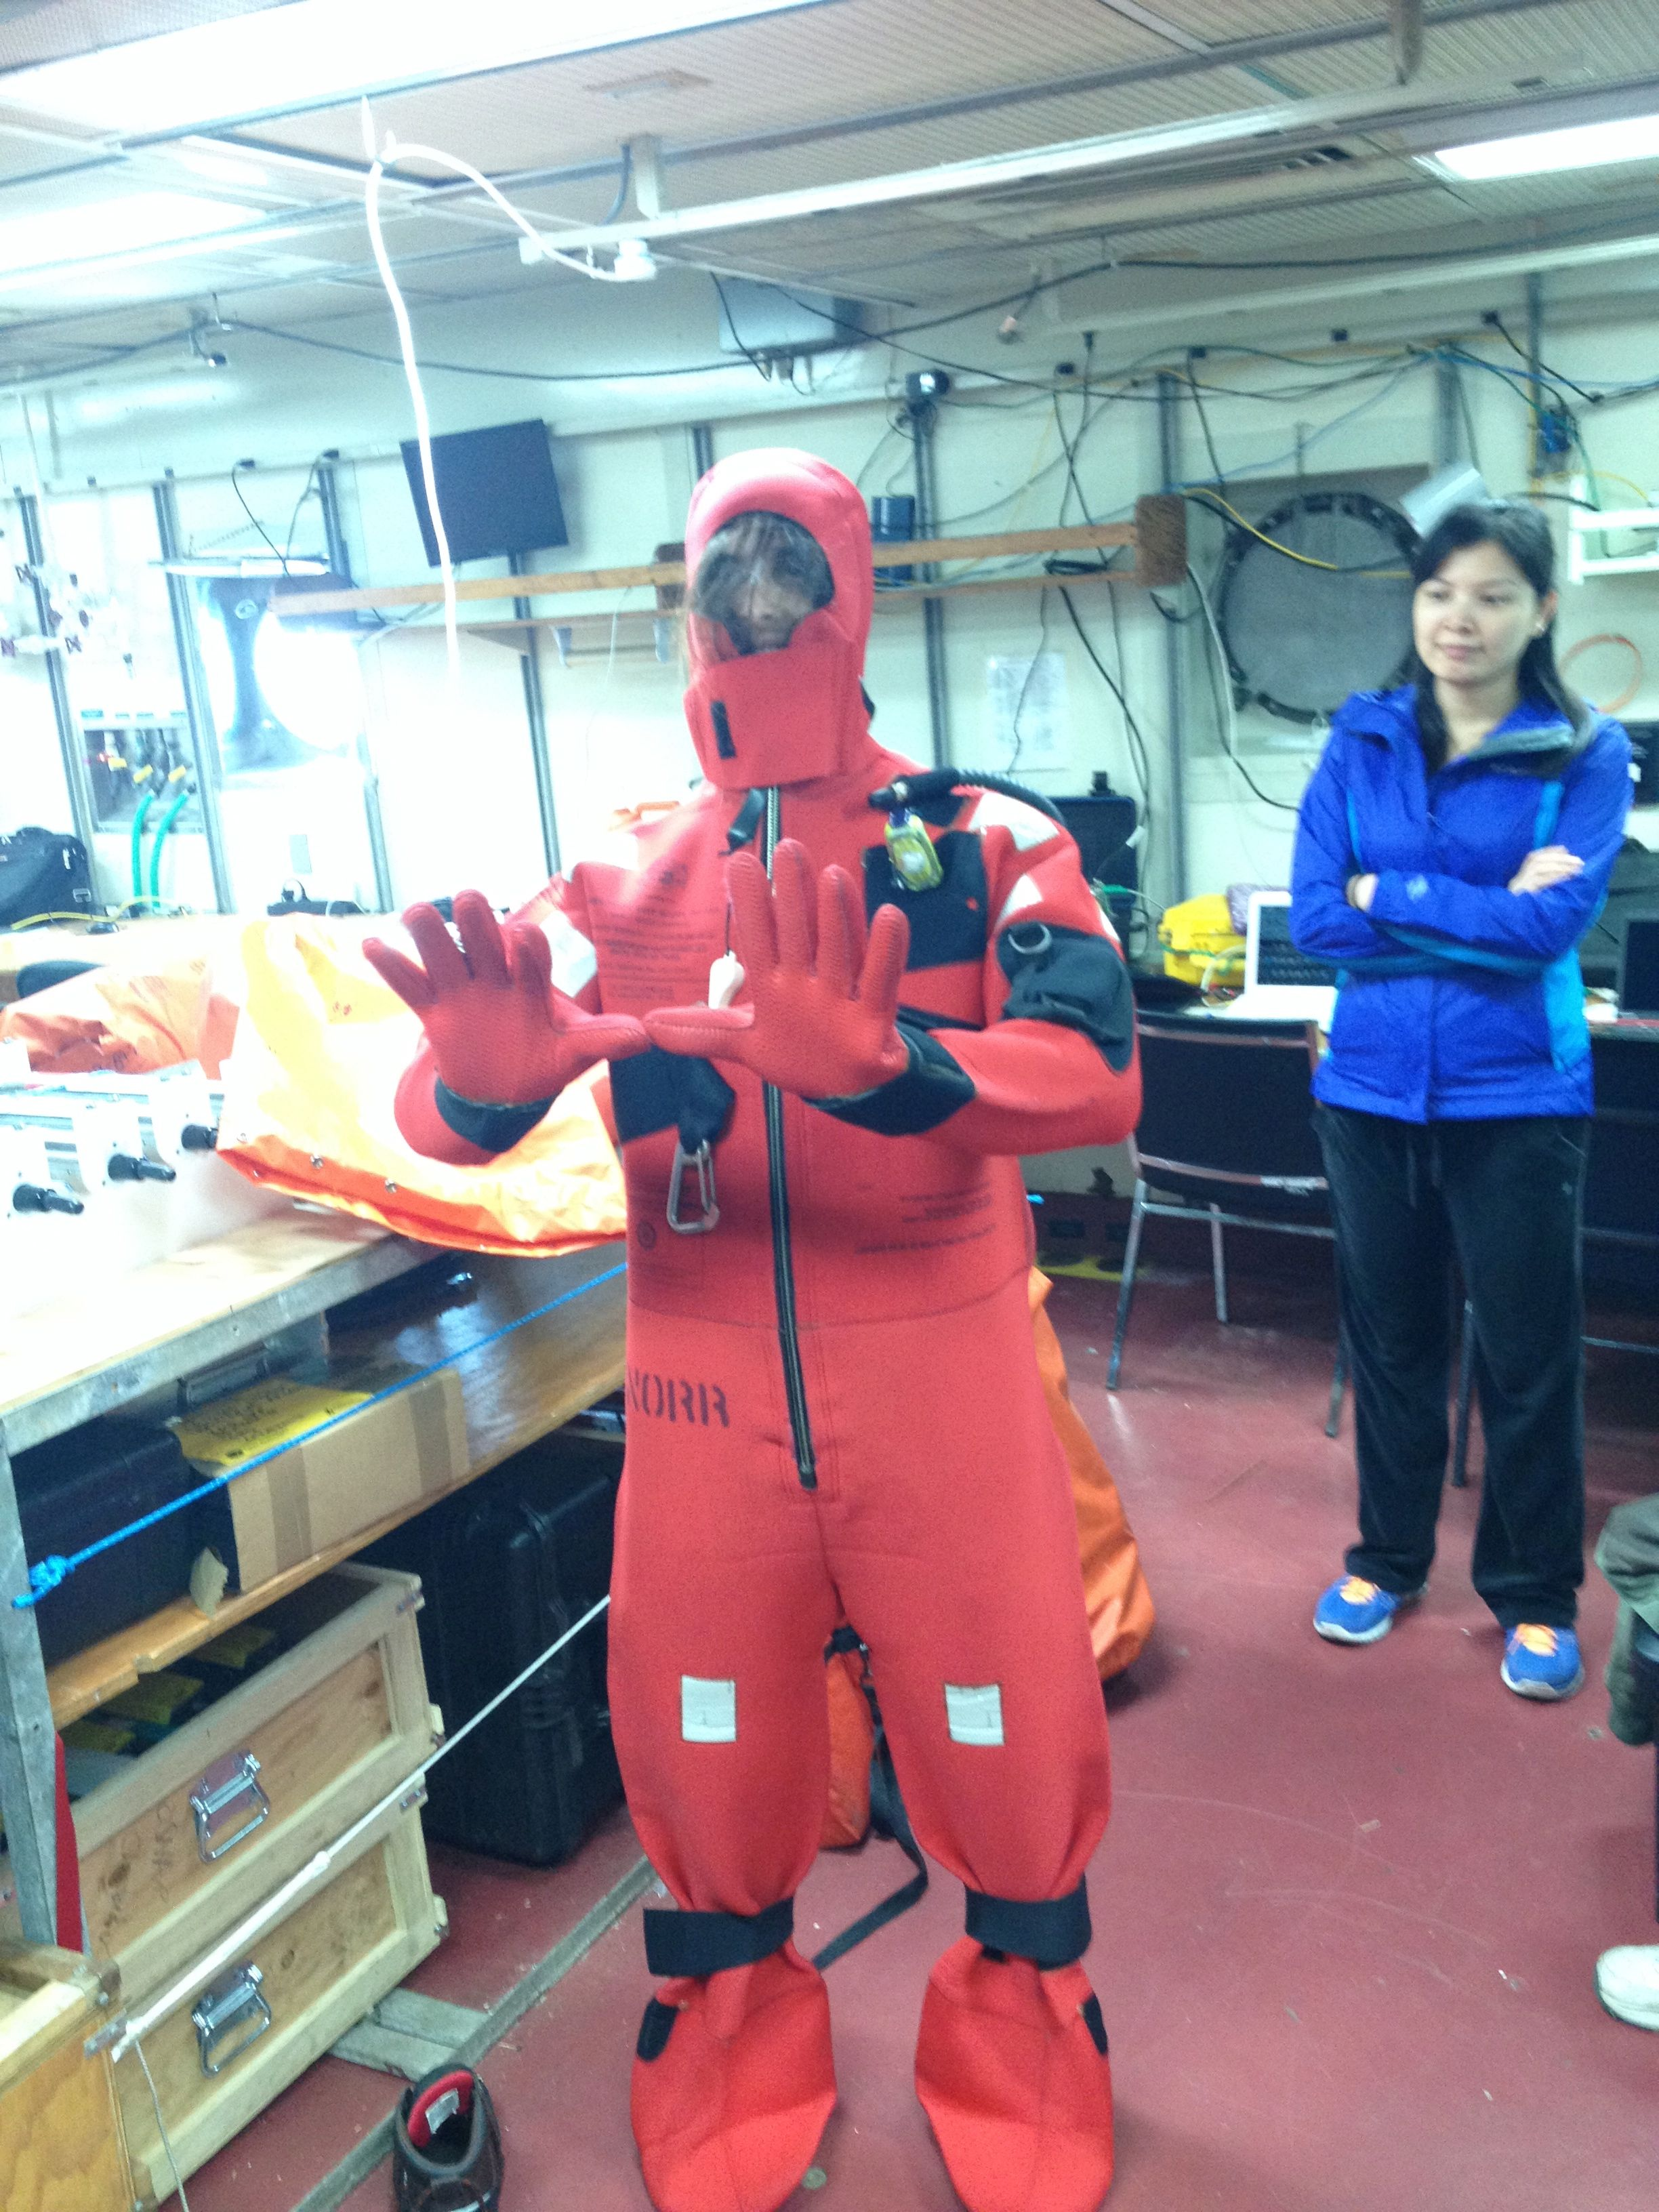 University of Miami technician Robert Salom tries on his survival suit in a pre-cruise safety drill